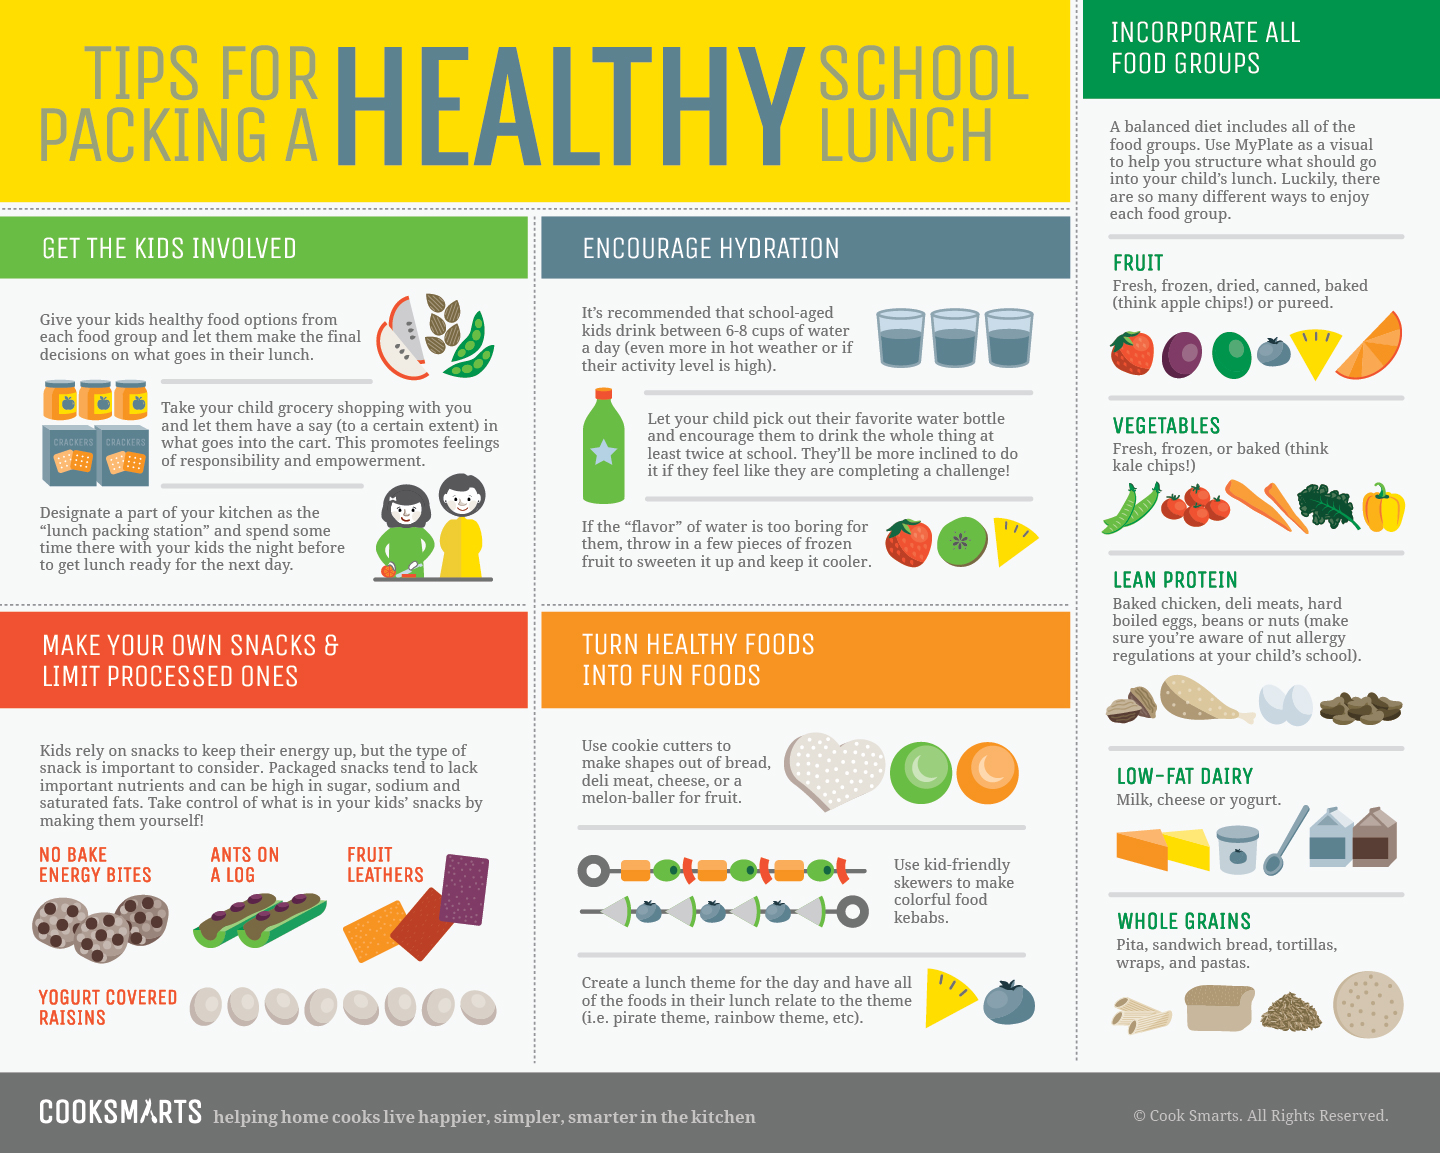 Tips For Packing A Healthy School Lunch Cook Smarts